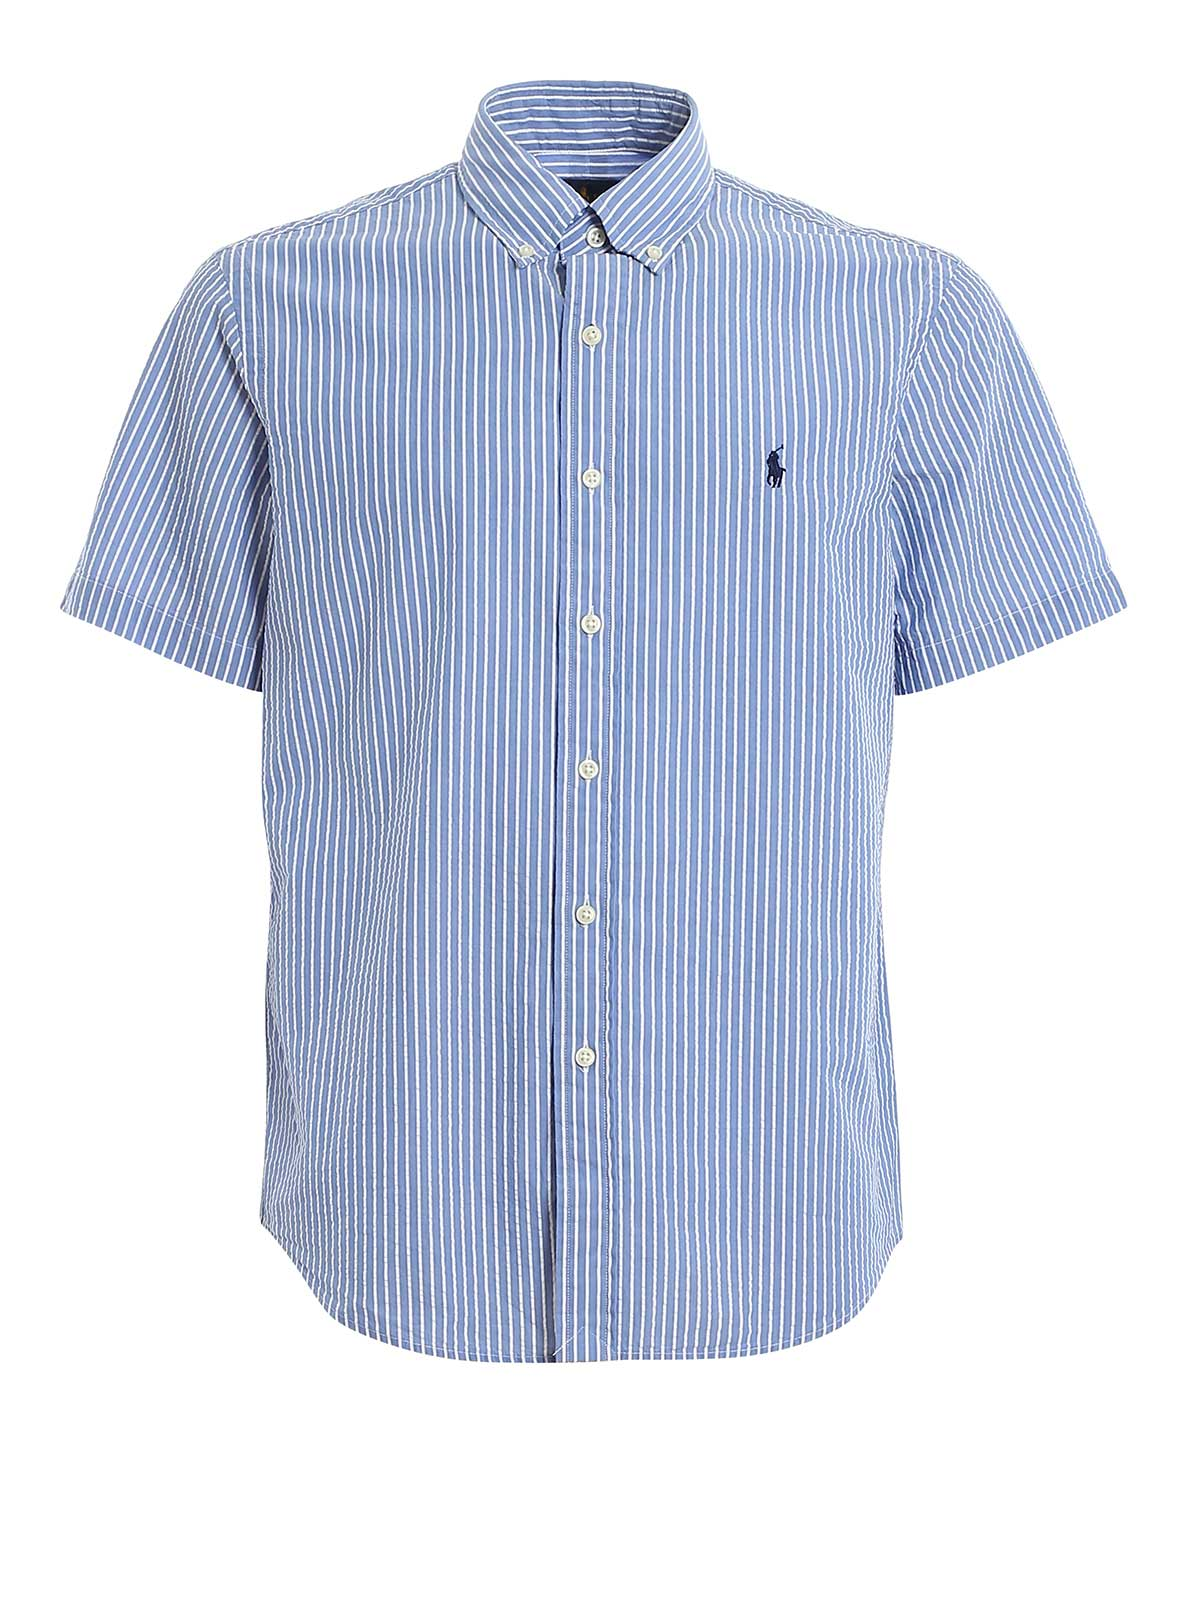 Picture of POLO RALPH LAUREN | Men's Striped Short Sleeve Shirt